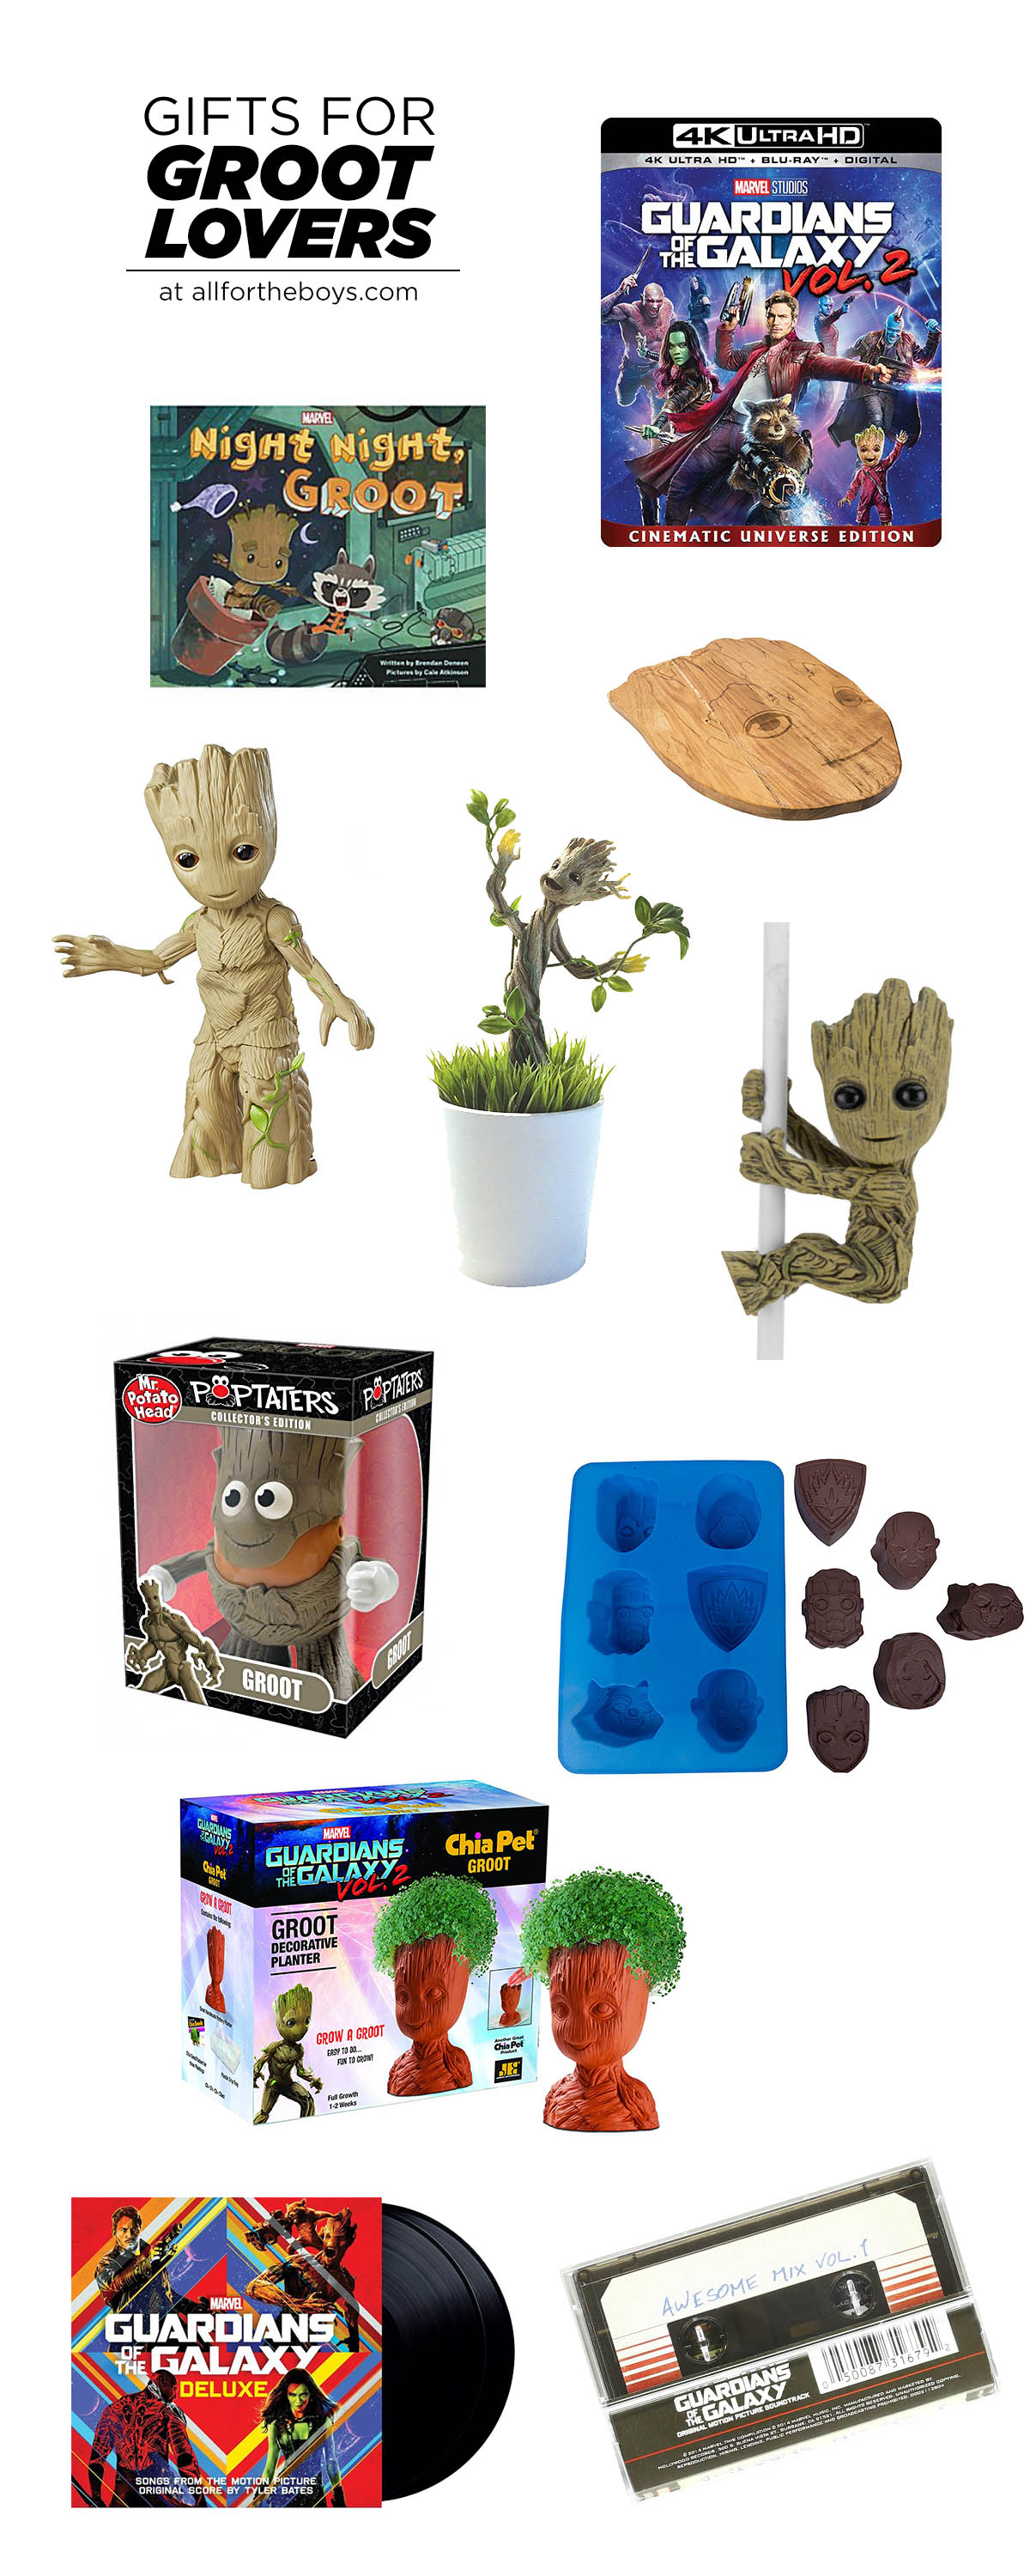 Gifts for Groot Lovers